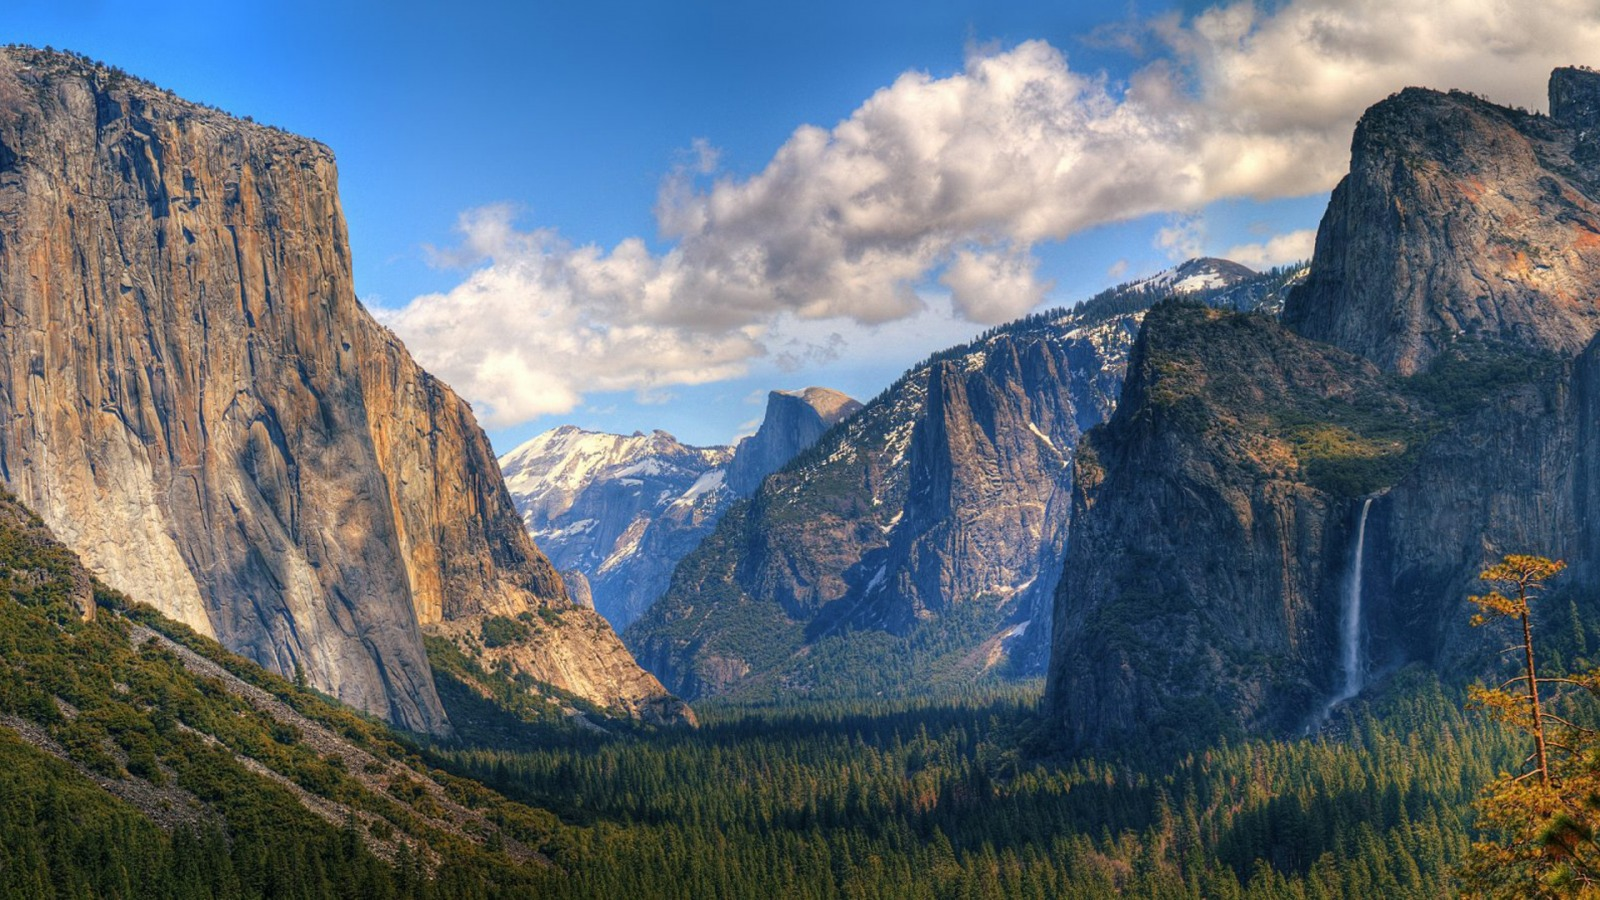 Exclusive Yosemite National Park Wallpapers 1600x900